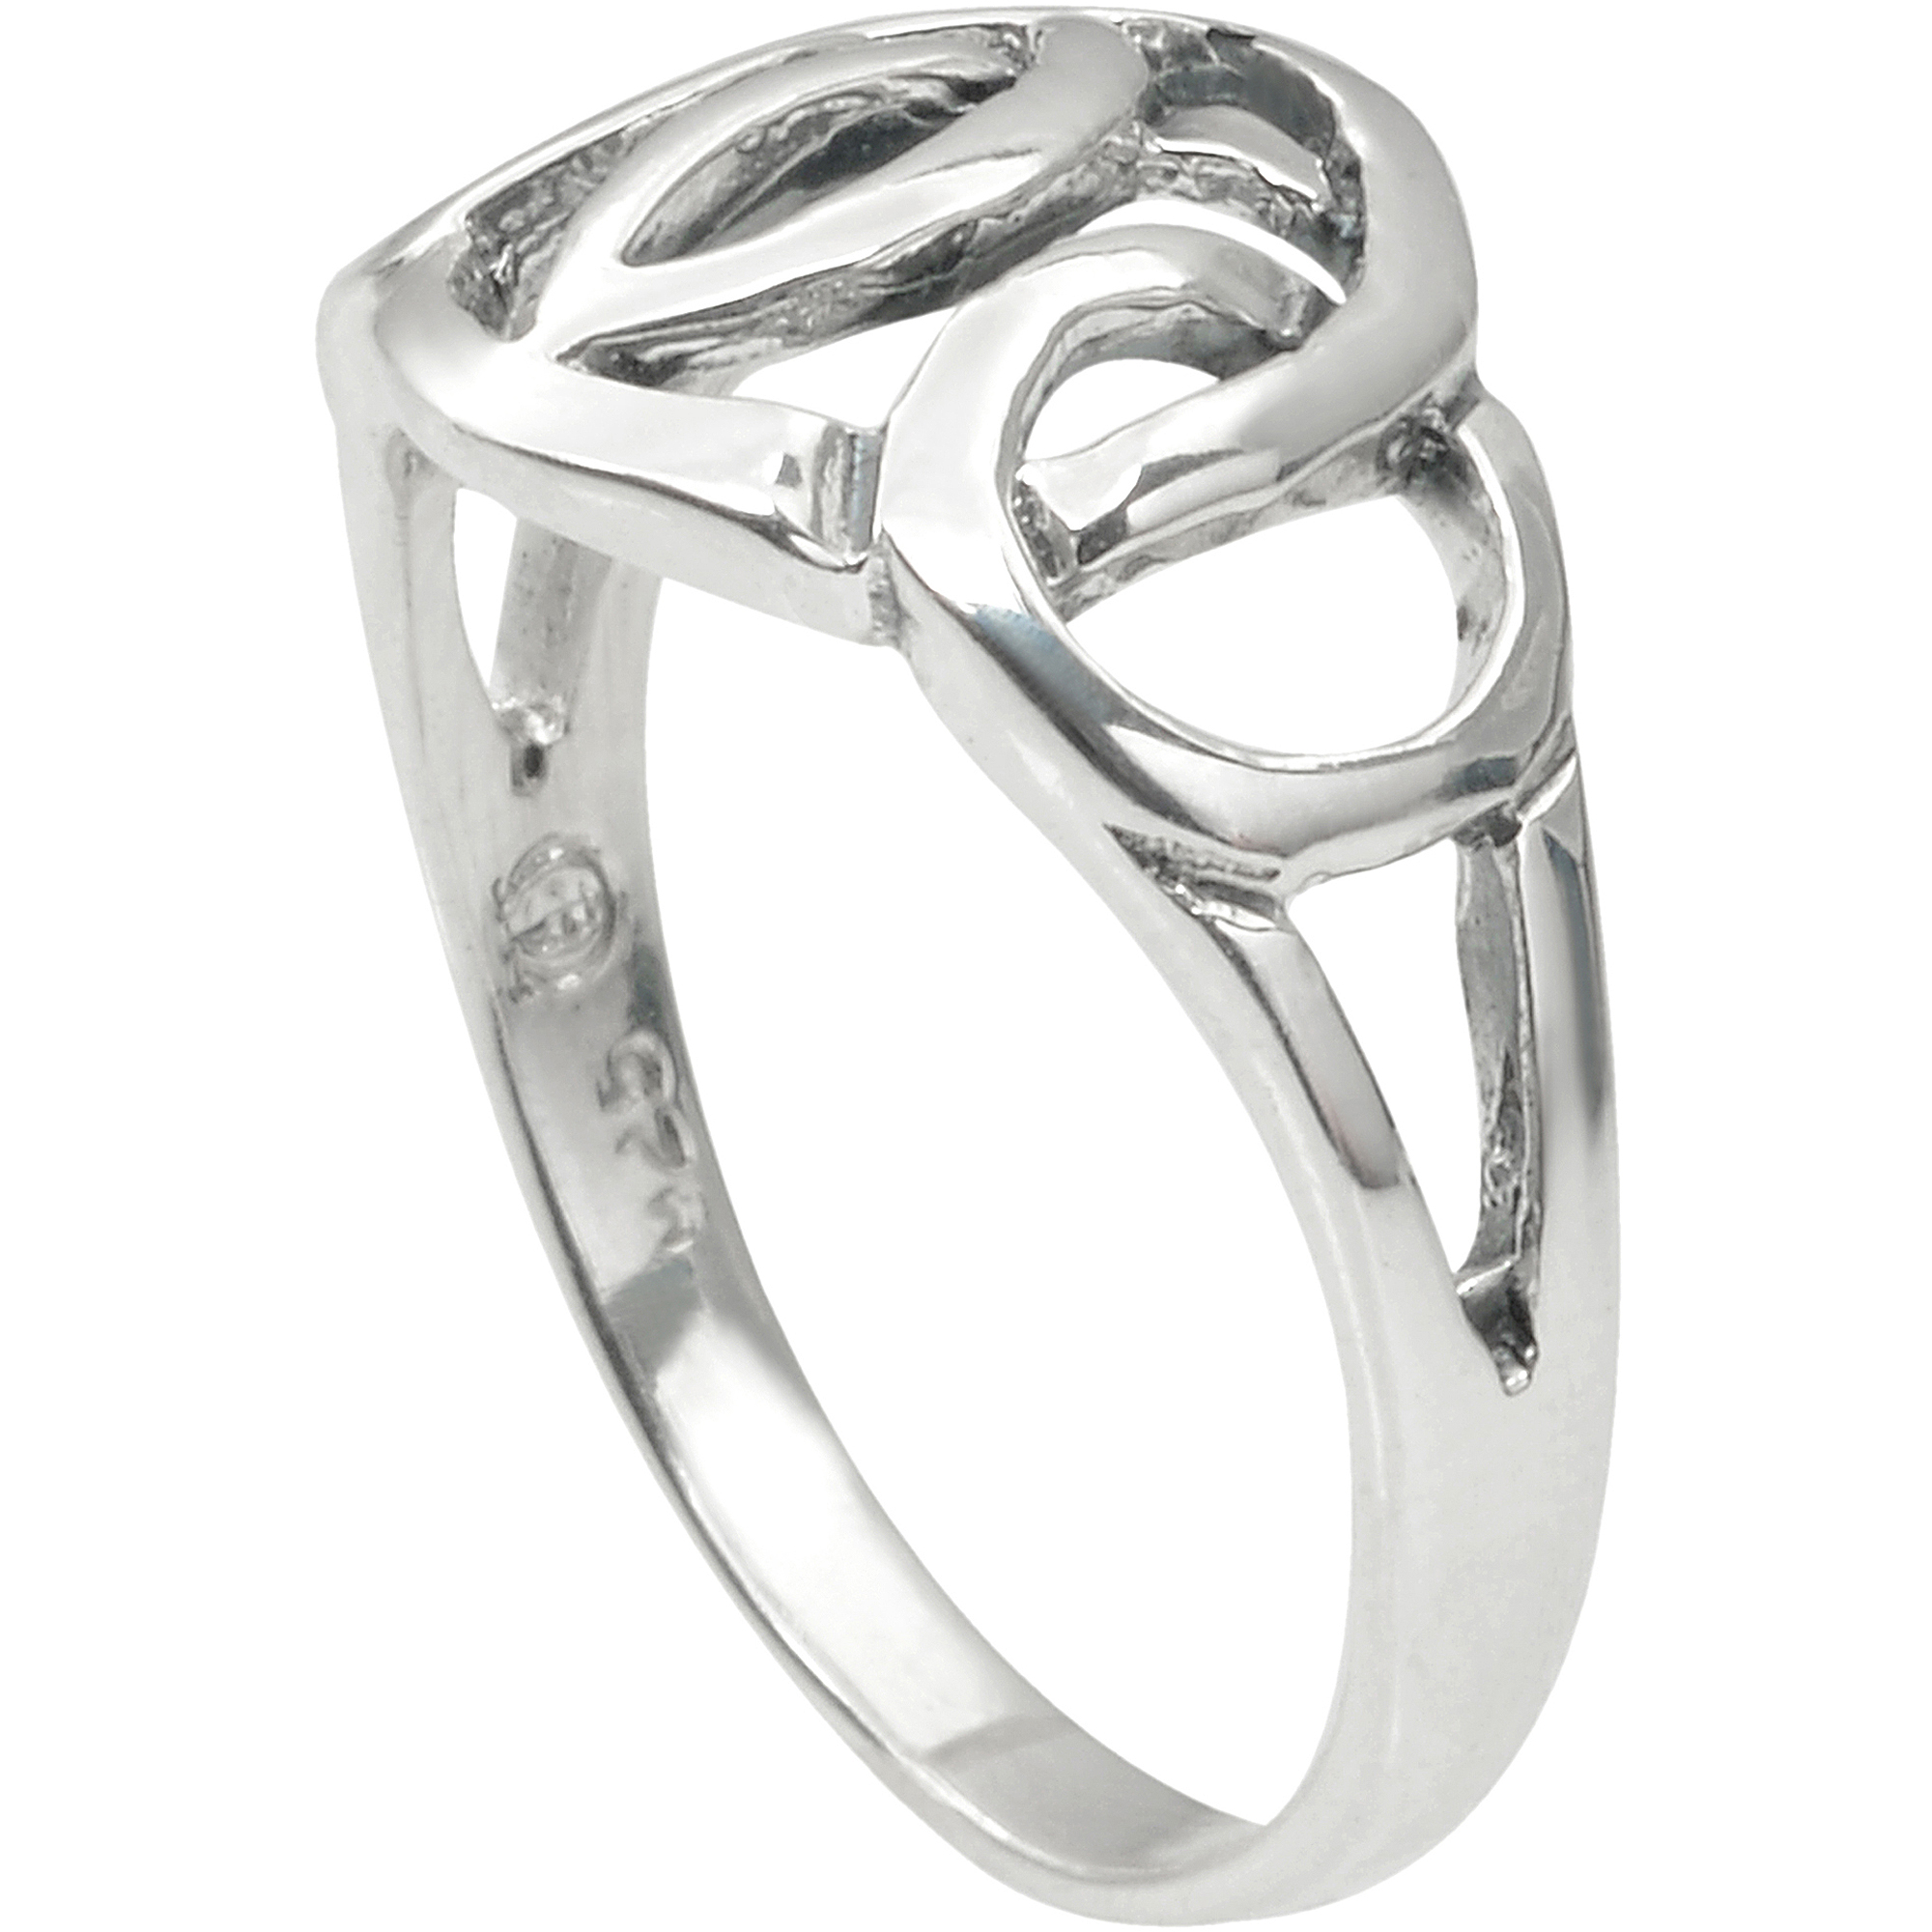 Brinley Co. Sterling Silver Ring